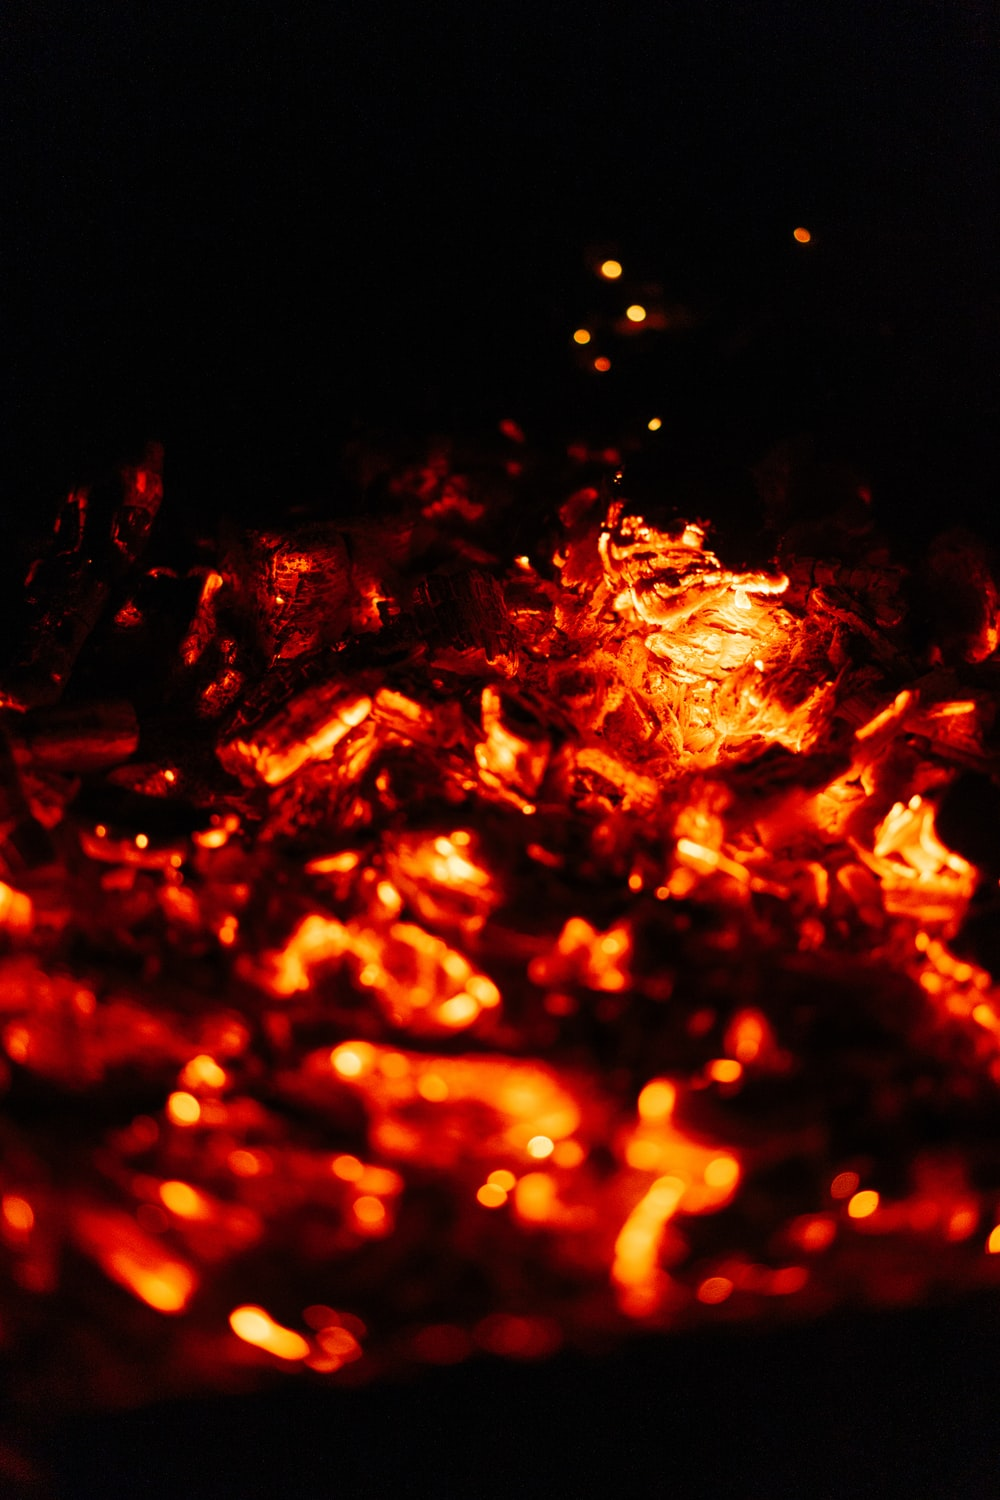 red and yellow fire in close up photography